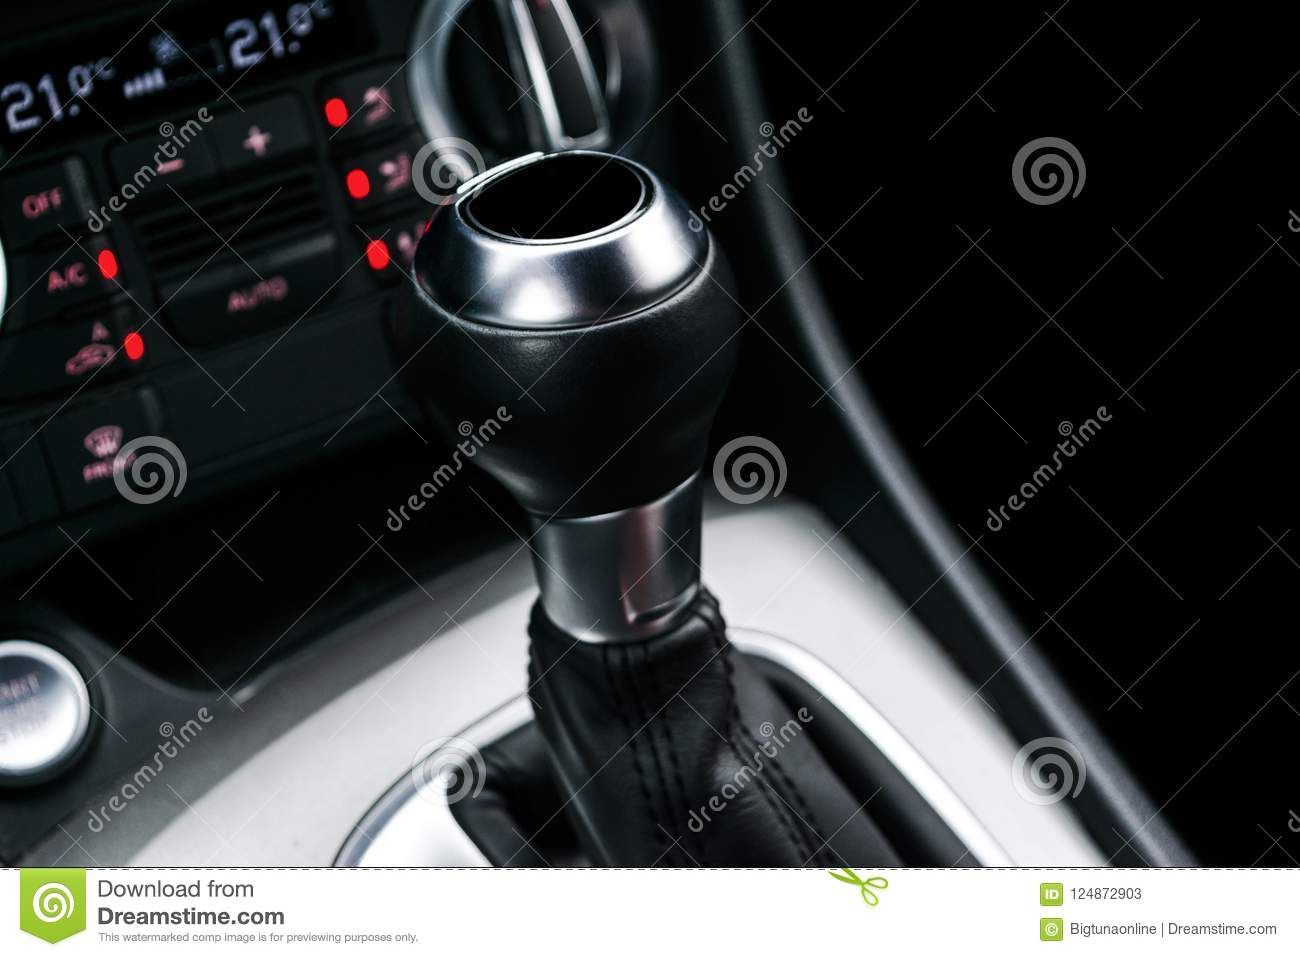 Close up view of a gear lever shift. Manual gearbox. Car interior details. Car transmission. Soft lighting. Abstract view. Car det